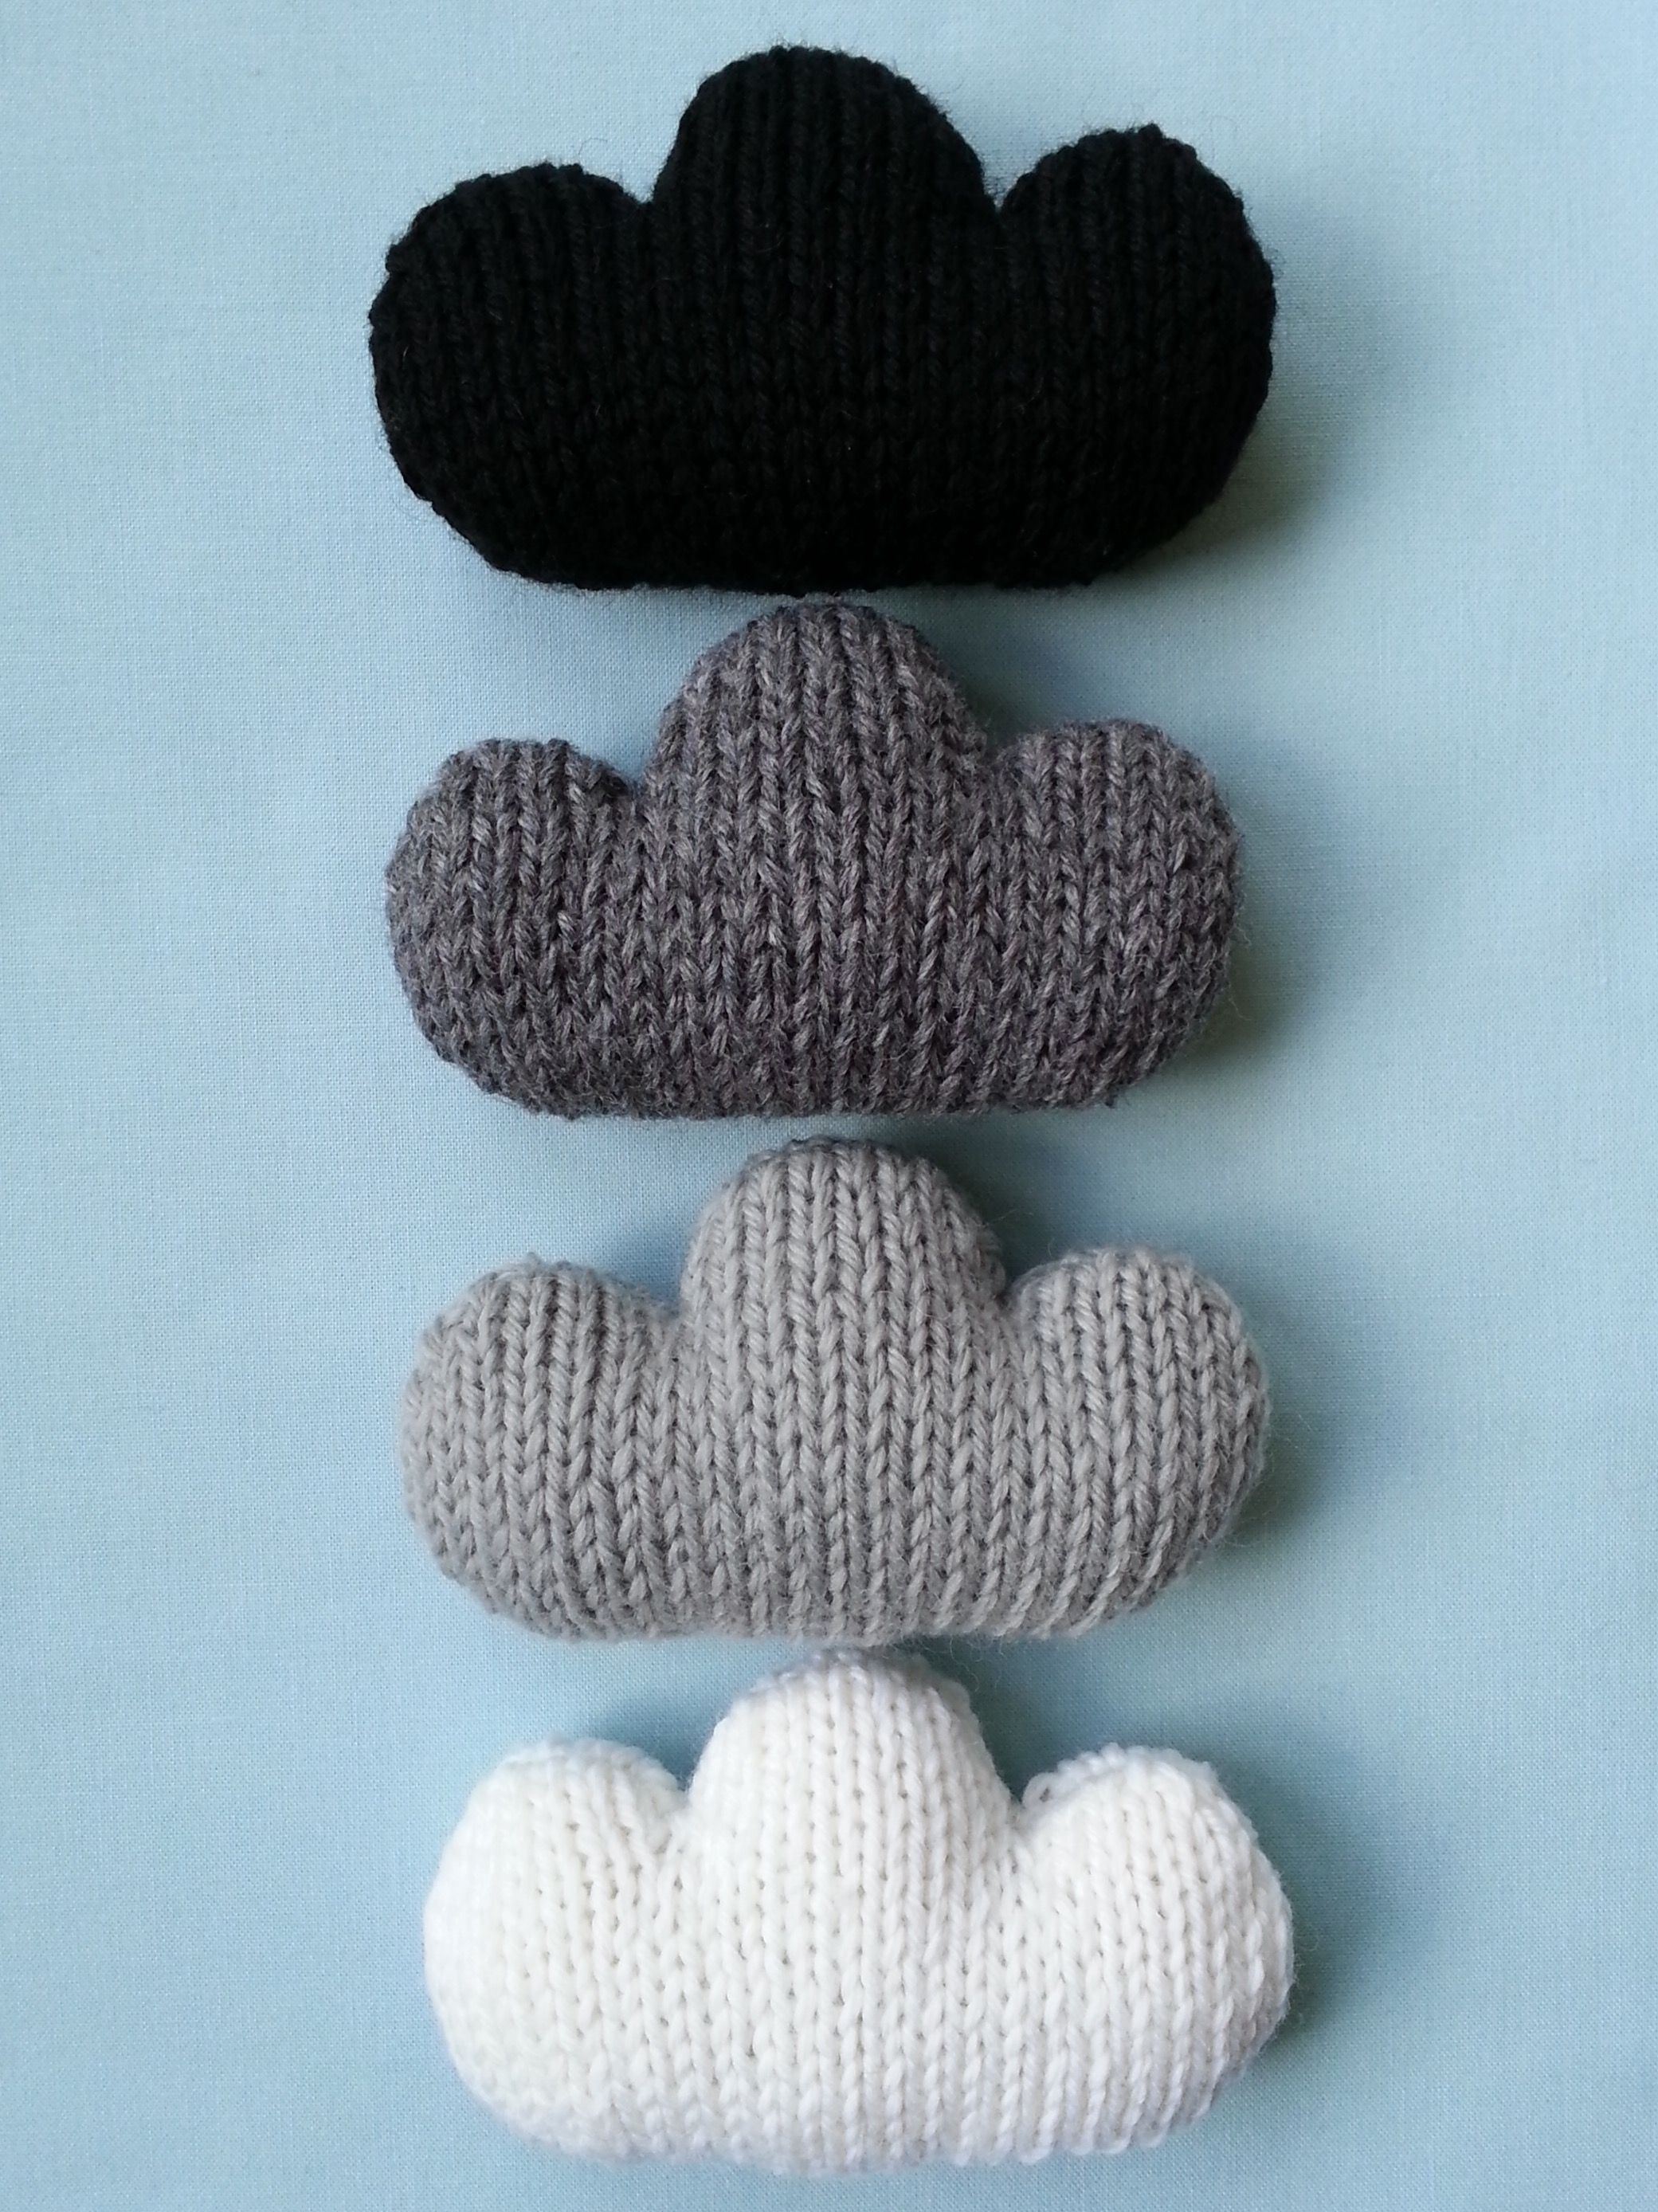 Clouds | Pinterest | Knitting patterns, Cloud and Patterns